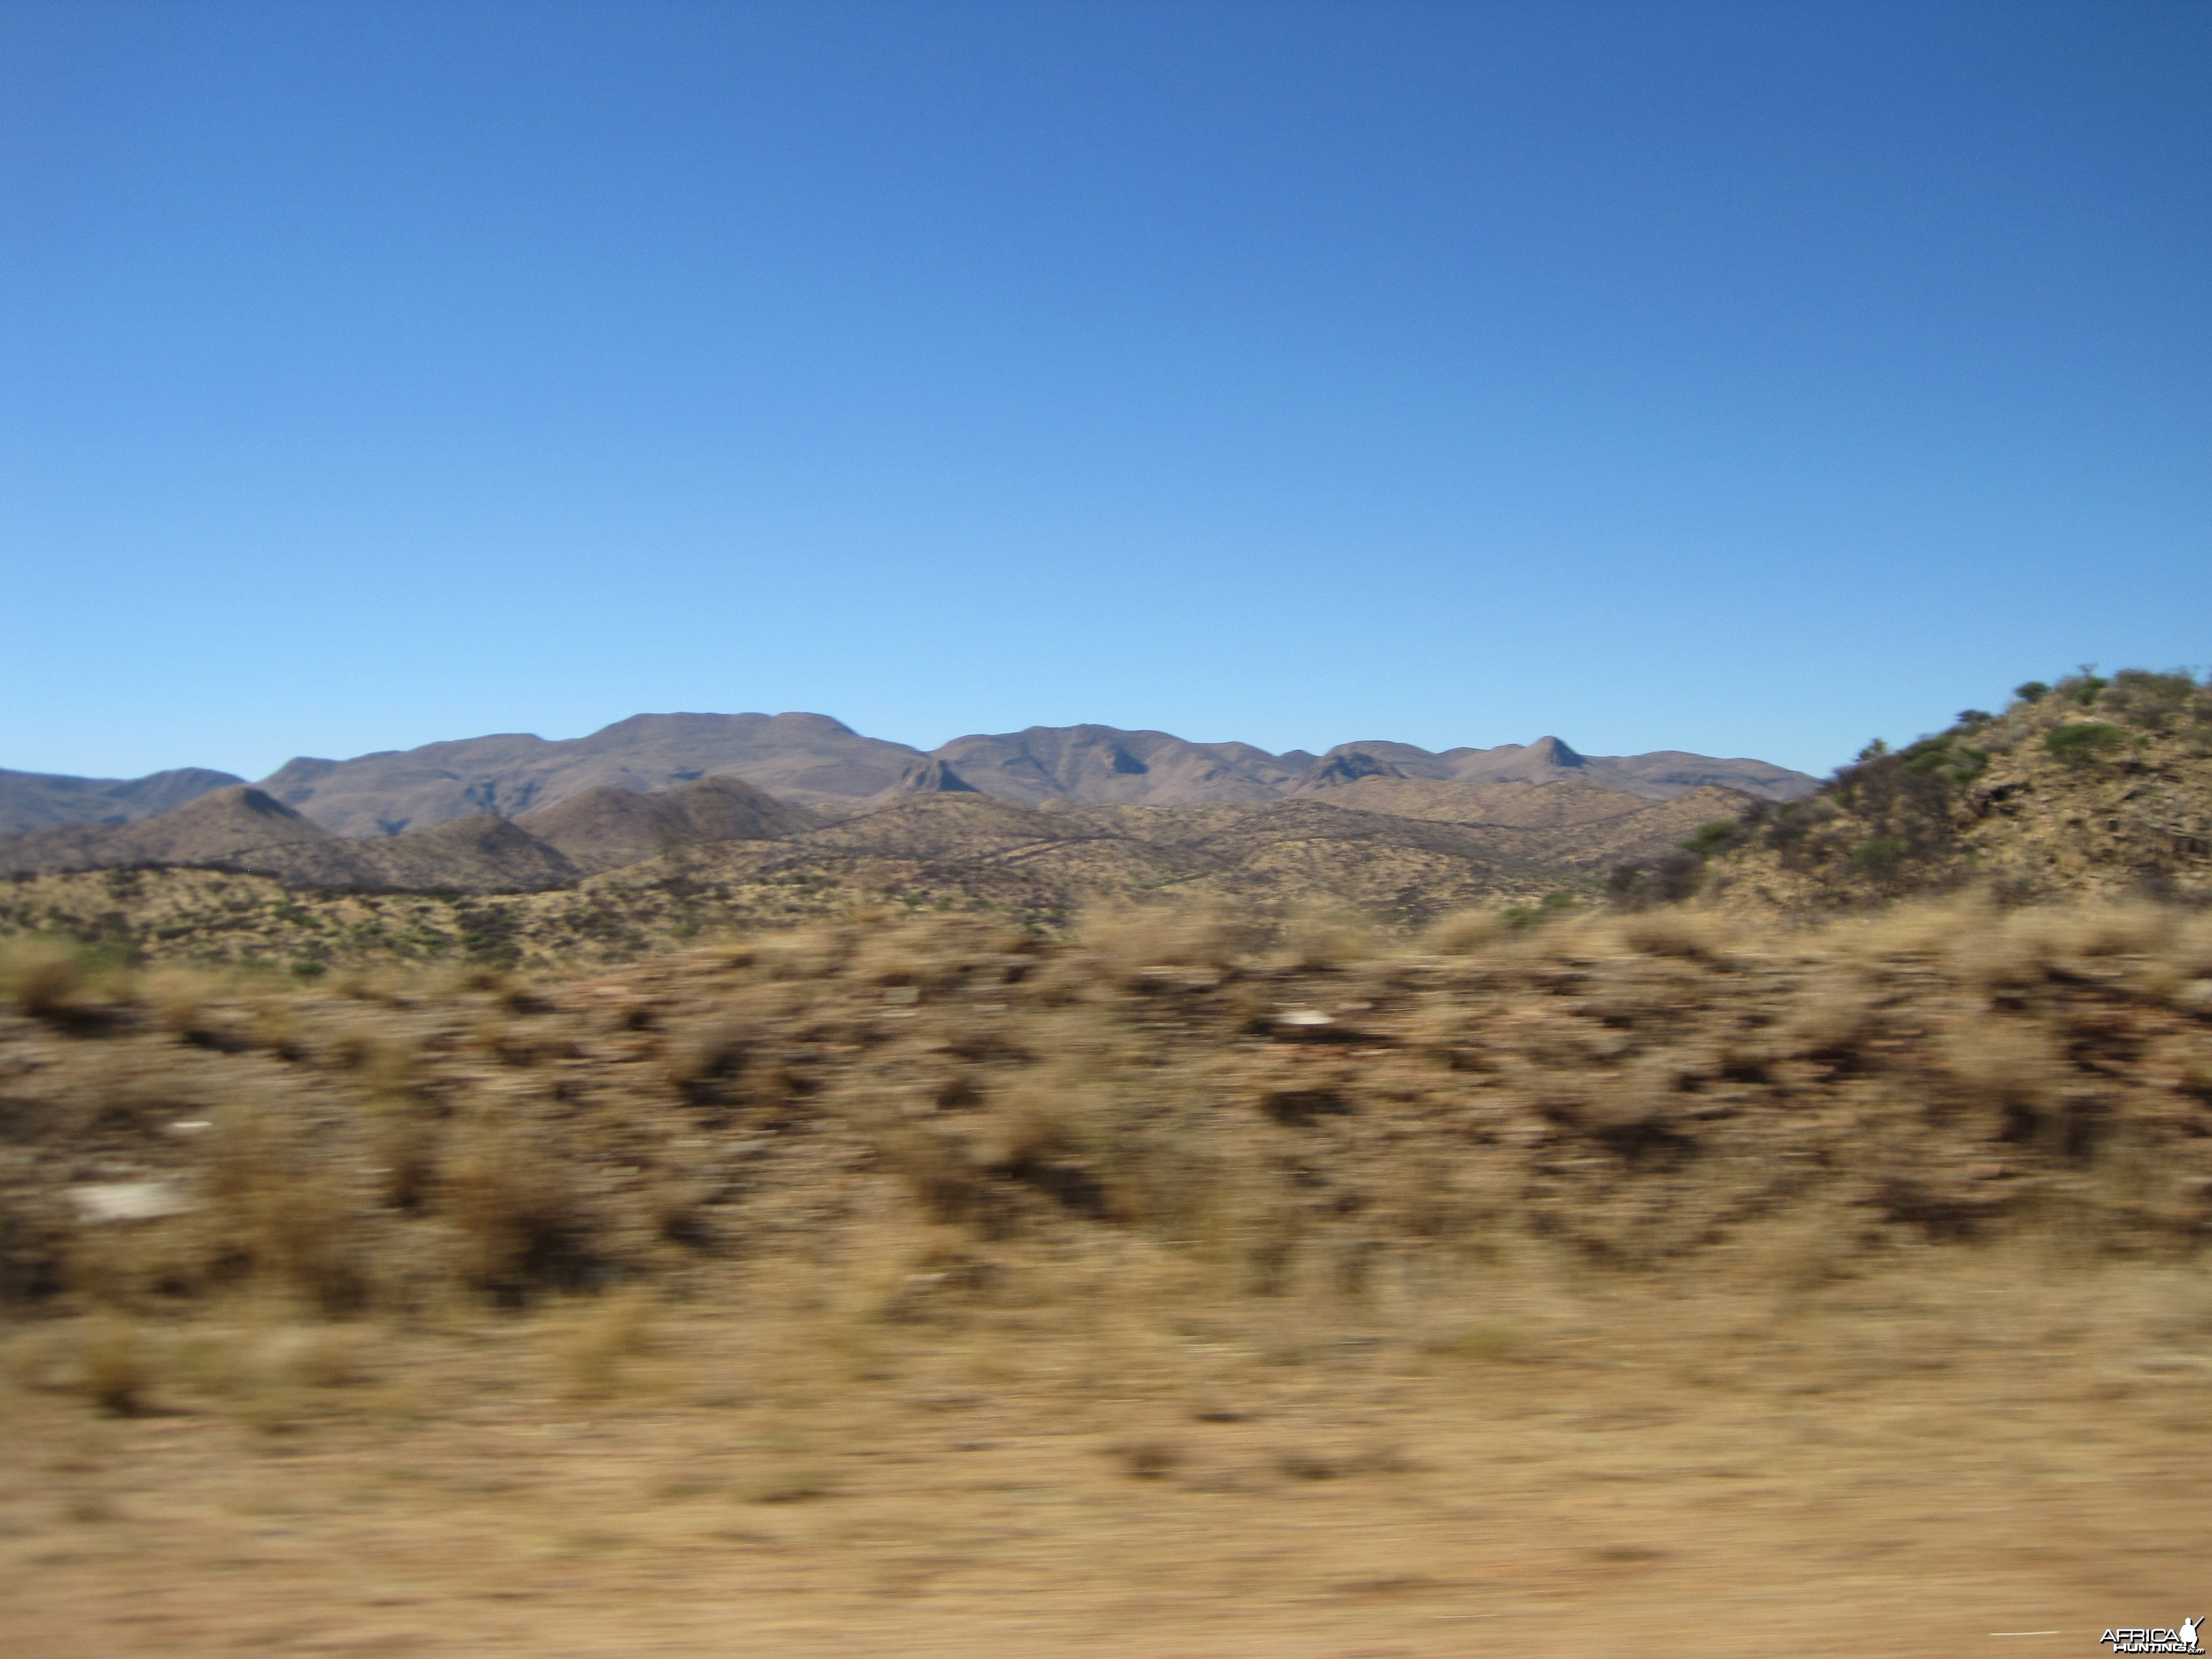 On the road to Windhoek from International Airport in Windhoek, Namibia